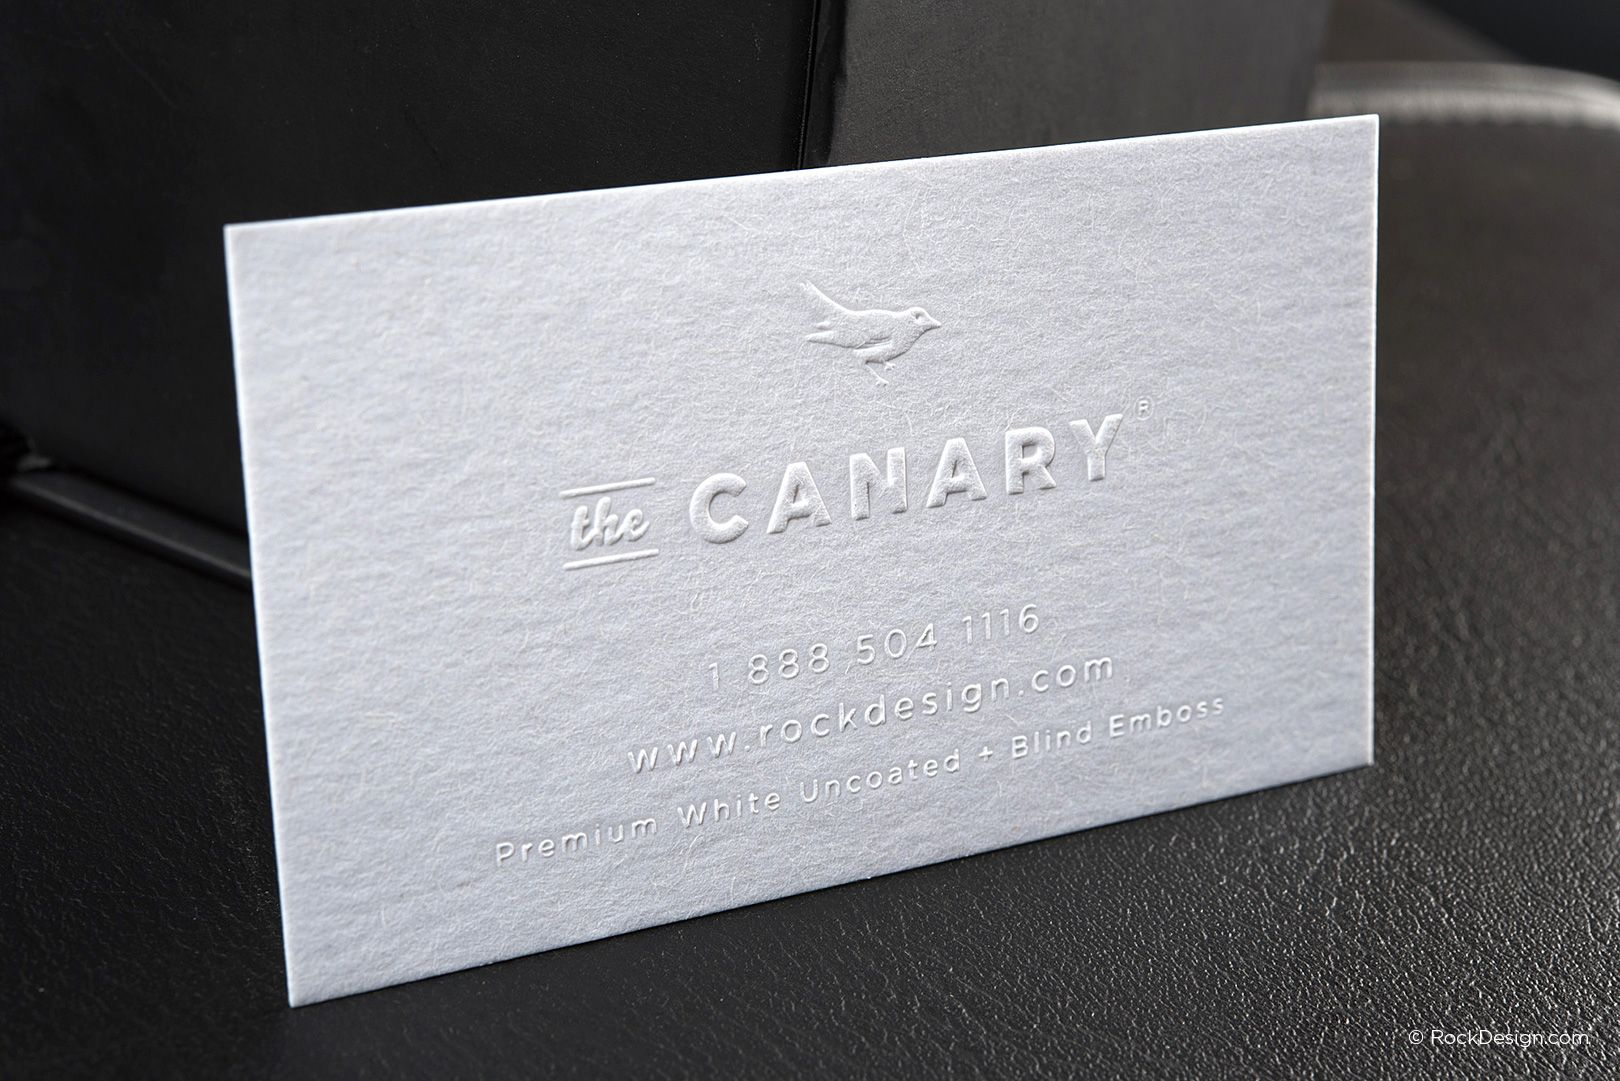 Minimalist blind emboss premium white business card the canary minimalist blind emboss premium white business card the canary rockdesign luxury business card printing wajeb Gallery